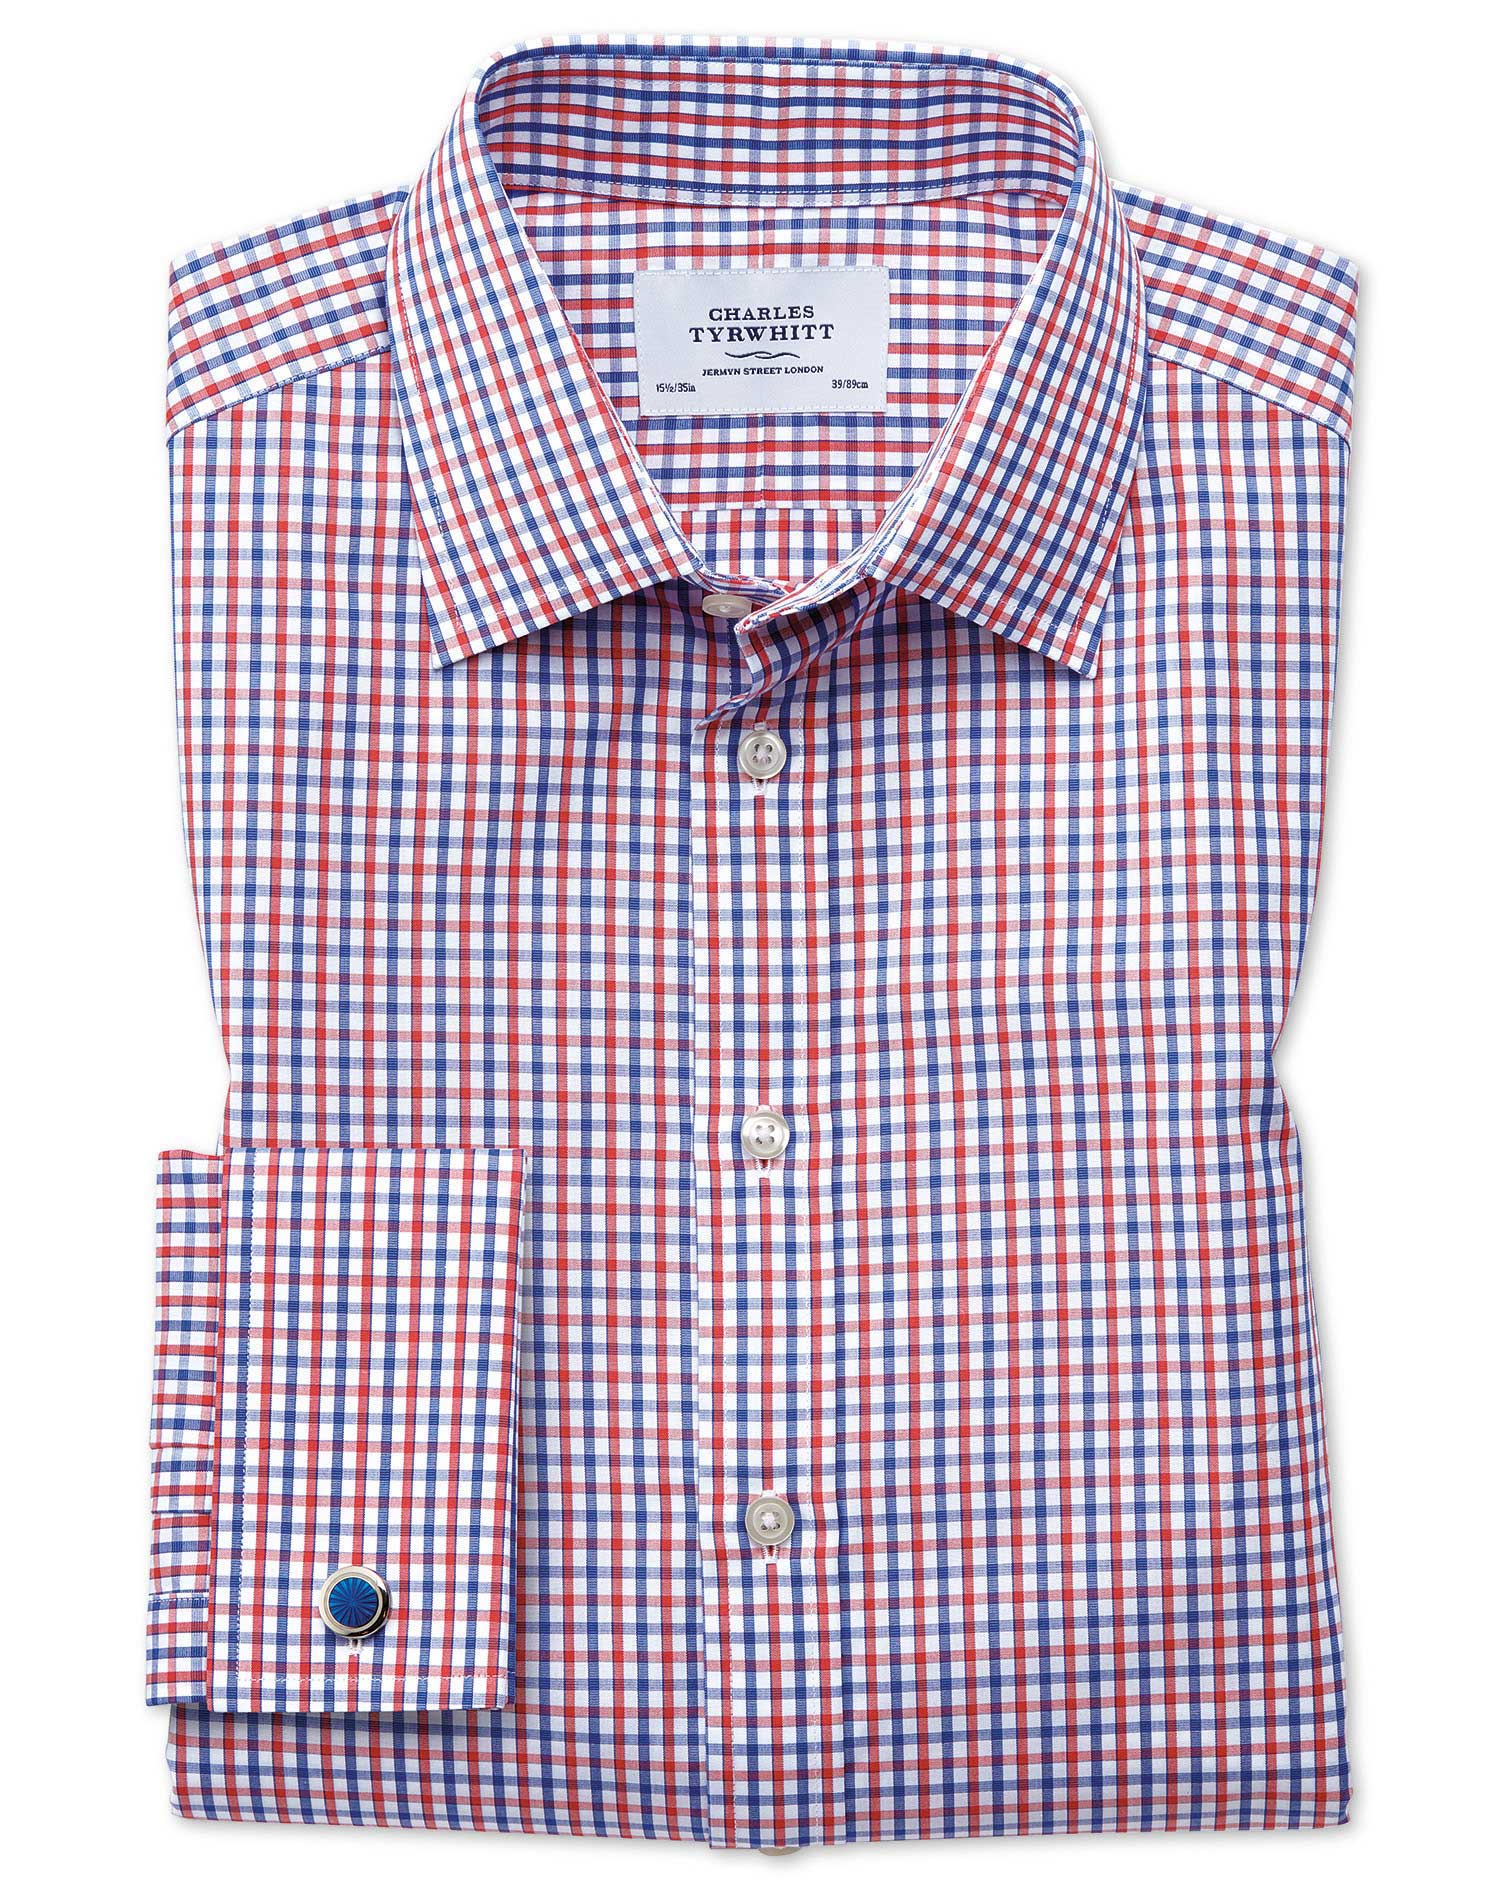 Classic Fit Two Colour Check Red and Blue Cotton Formal Shirt Single Cuff Size 16/34 by Charles Tyrw